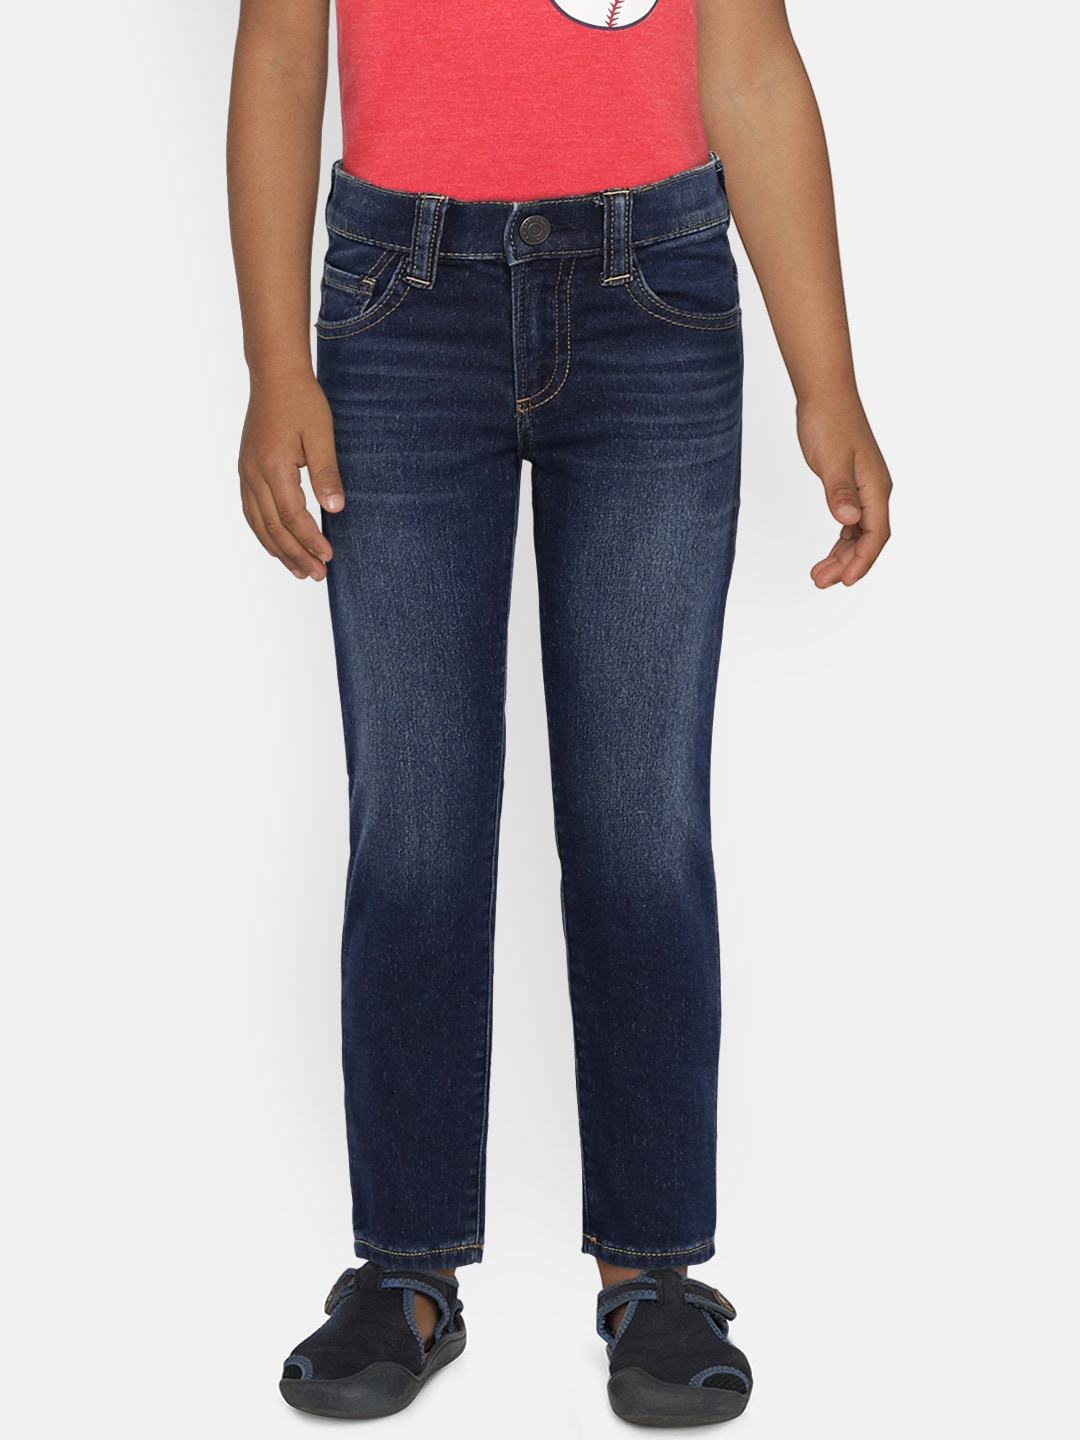 7320621d4e04 GAP Jeans - Select from Latest Collection of GAP Jeans